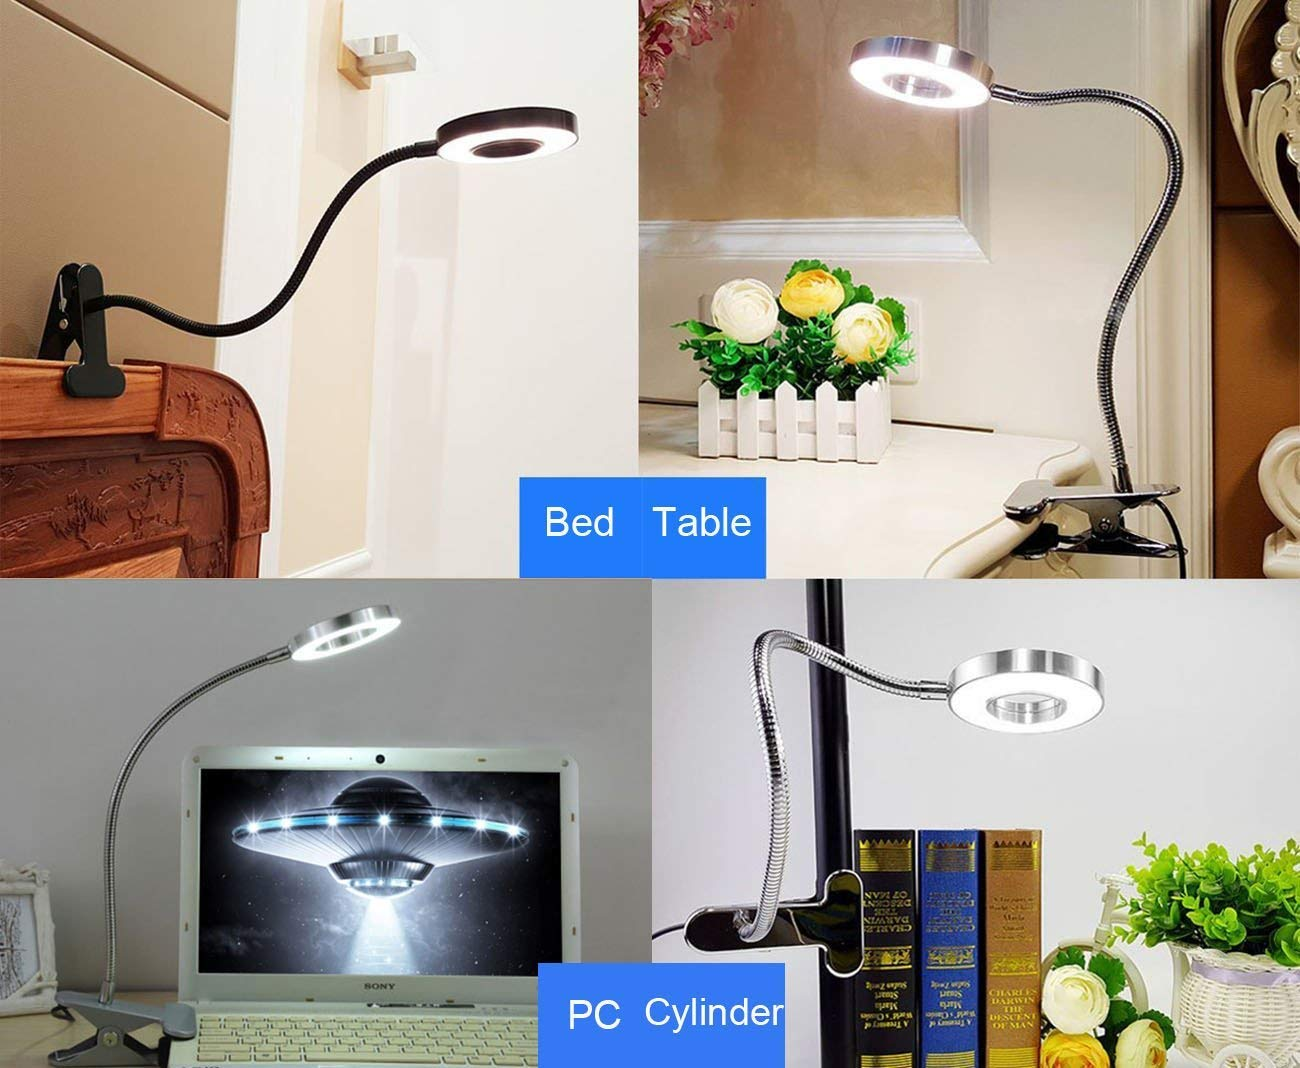 W-LITE 6W LED USB Dimmable Reading Ligh Clip Laptop Lamp for Book,Piano,Bed Headboard,Desk, Eye-Care 2 Light Color Switchable, Adapter Included, Black by W-LITE (Image #3)